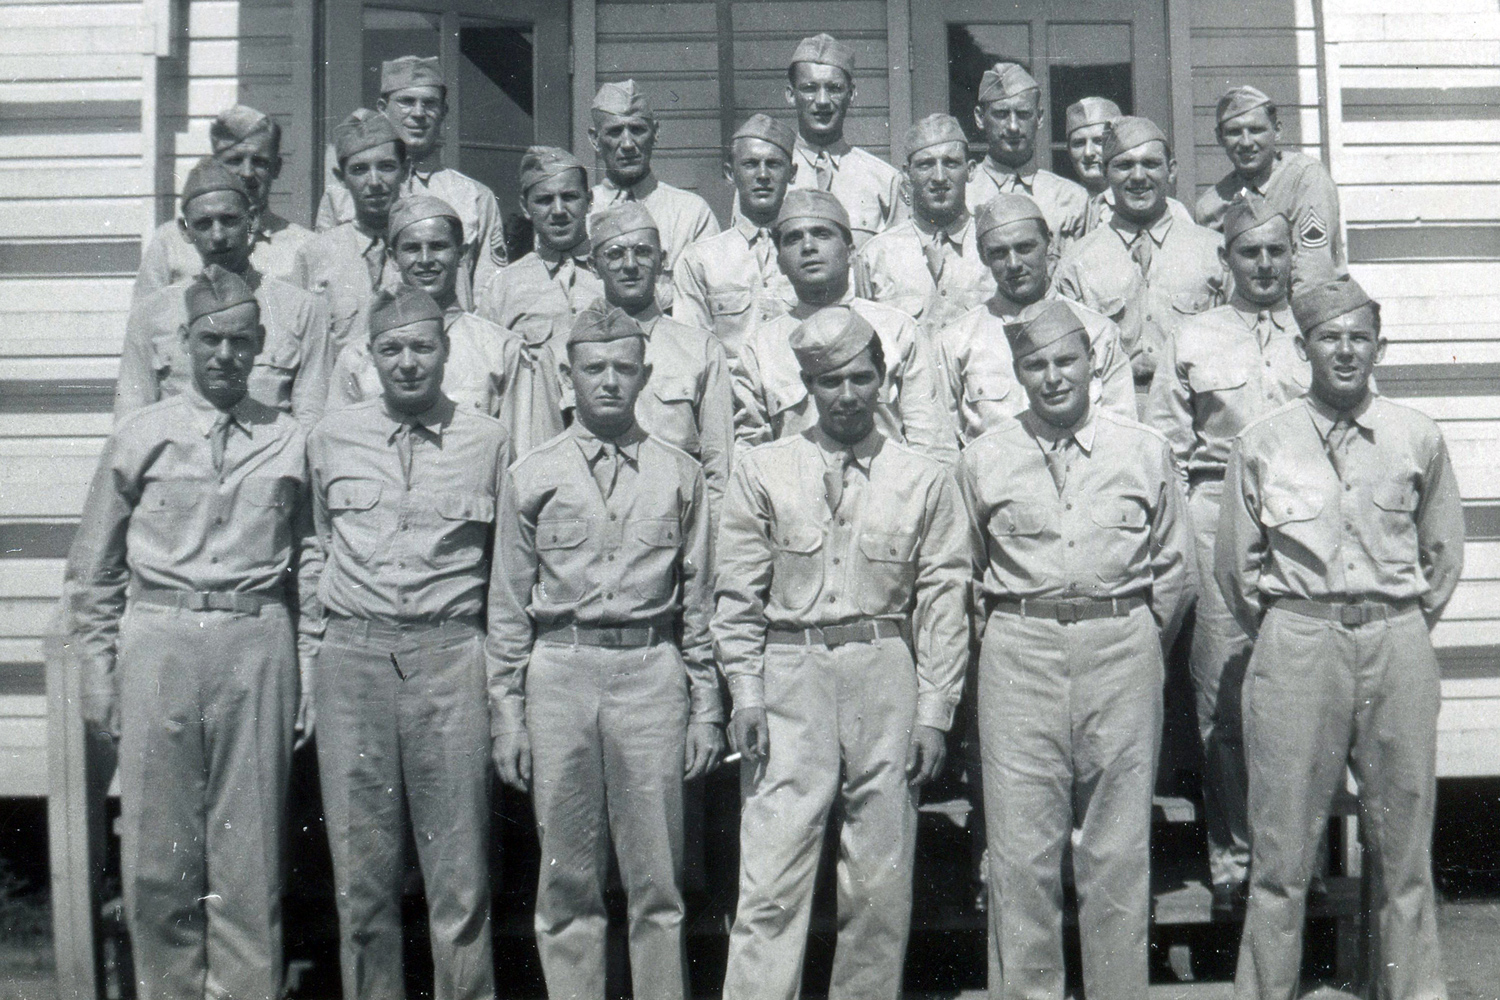 Ballard-collection-poss-32nd-cadre-prob-1942-cropped-enhanced